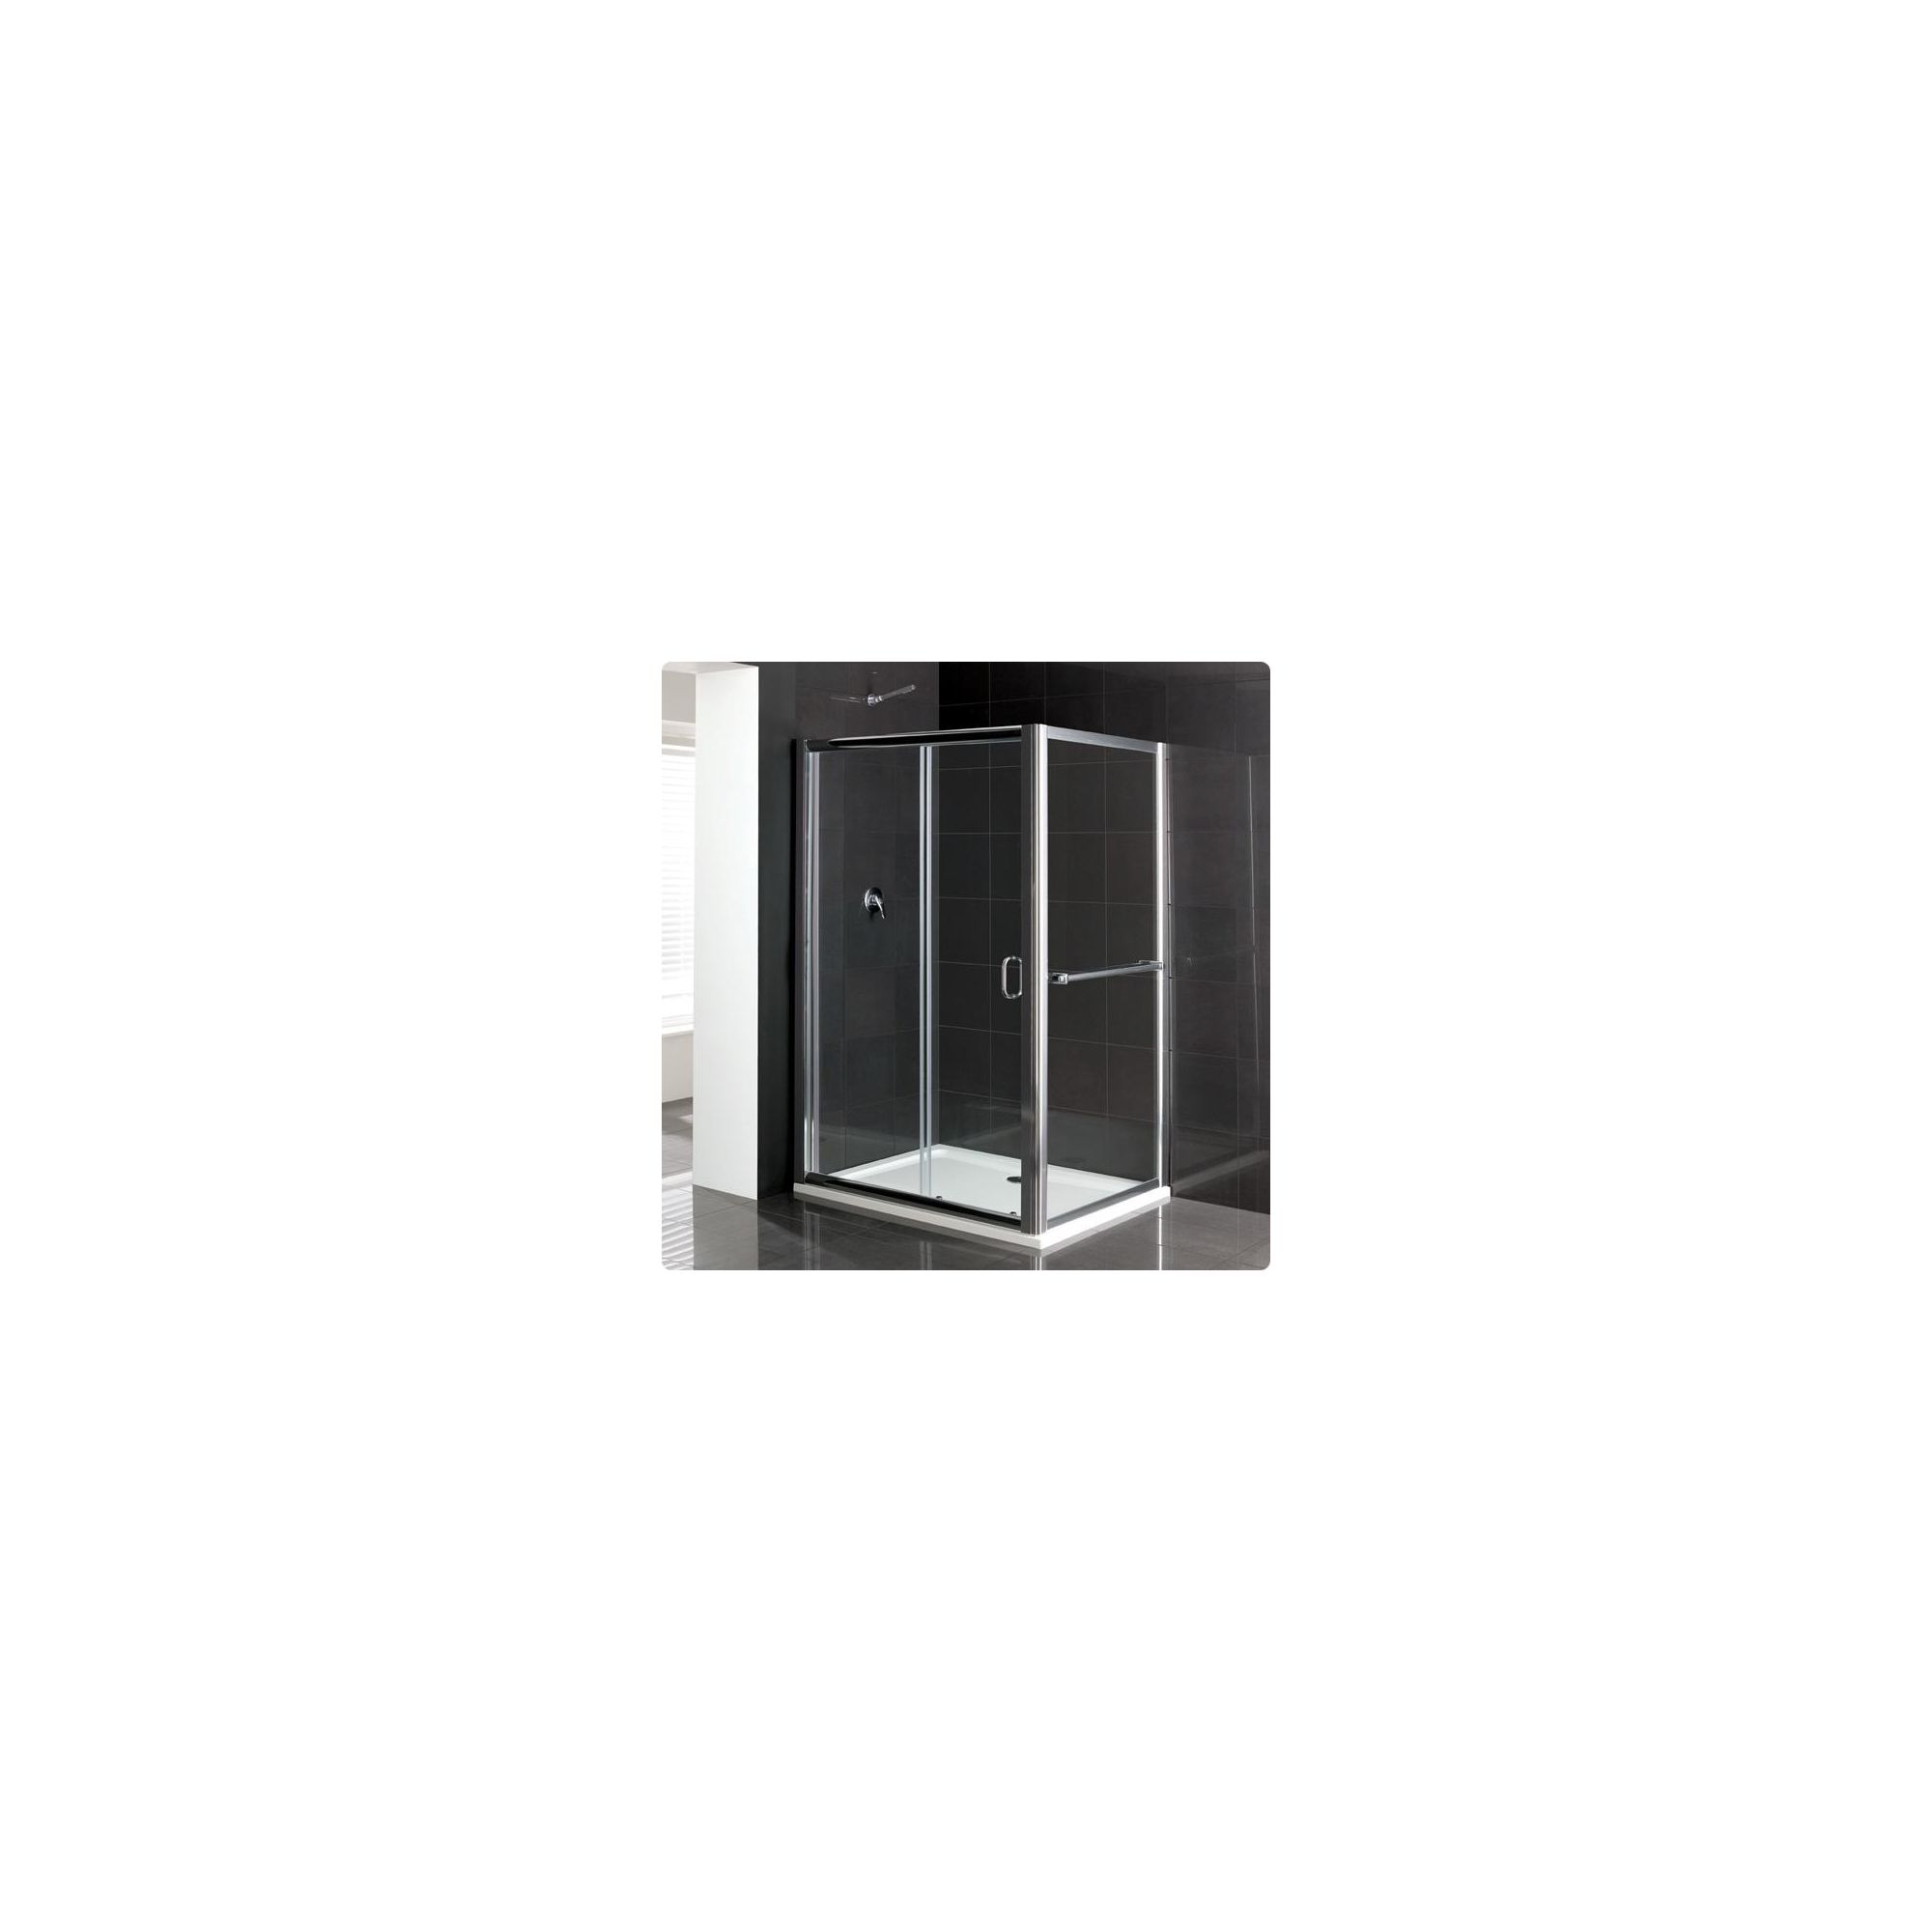 Duchy Elite Silver Sliding Door Shower Enclosure with Towel Rail, 1200mm x 800mm, Standard Tray, 6mm Glass at Tescos Direct